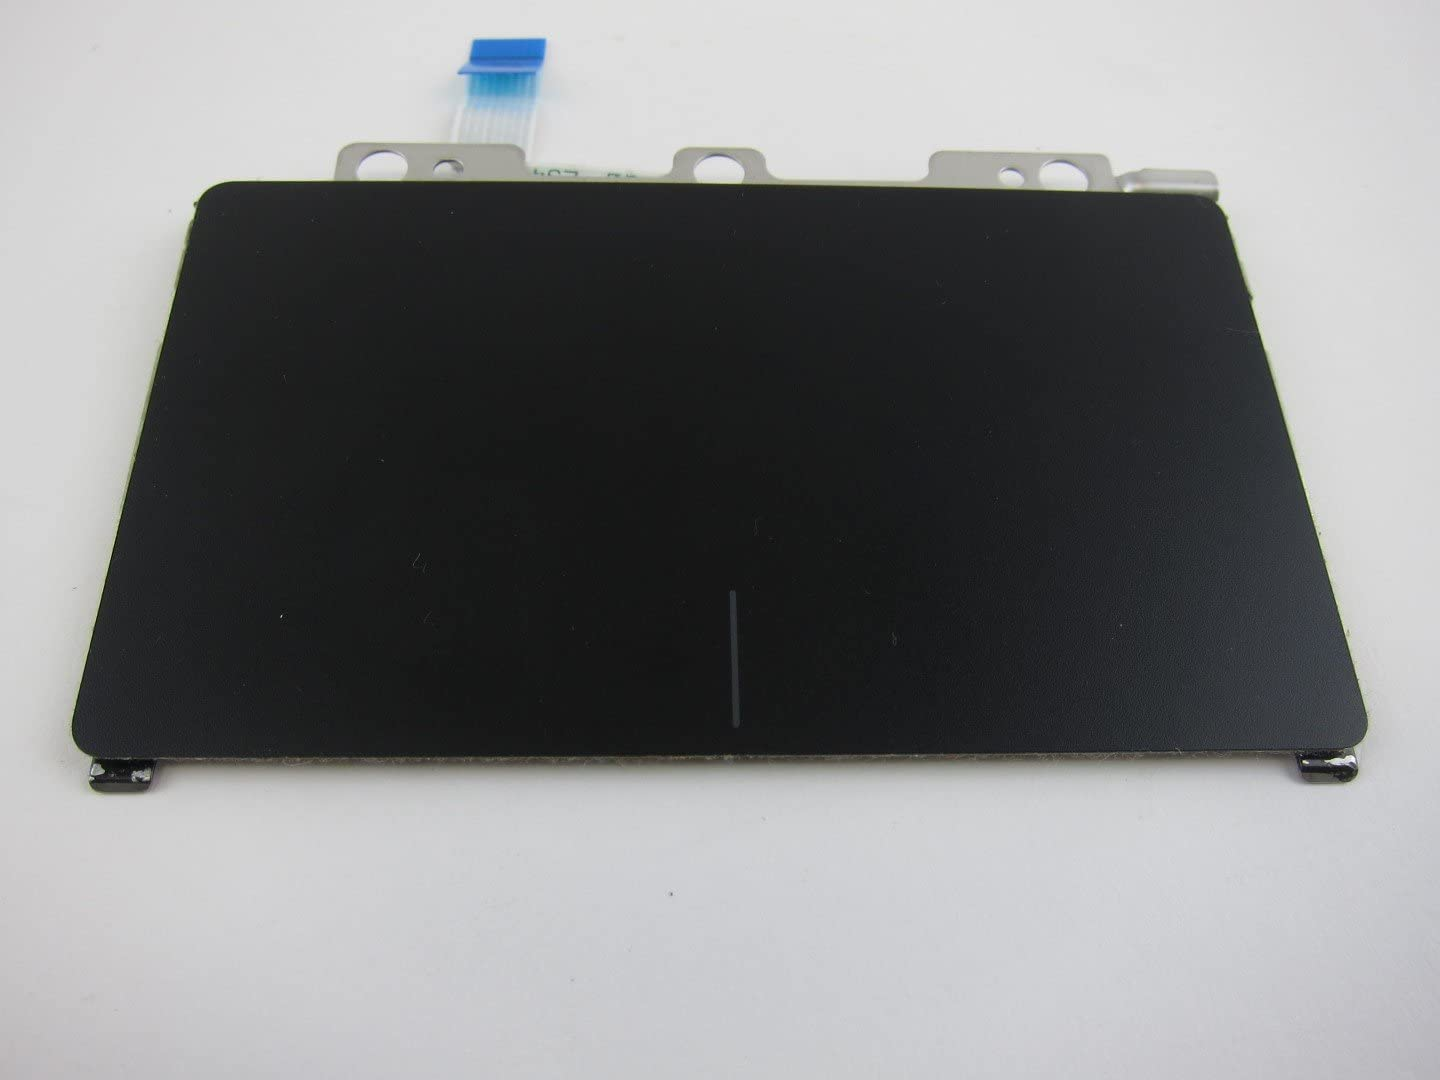 Dell Inspiron 15 3541/3542/3543 Touchpad Sensor With Cable - TM-02985-004